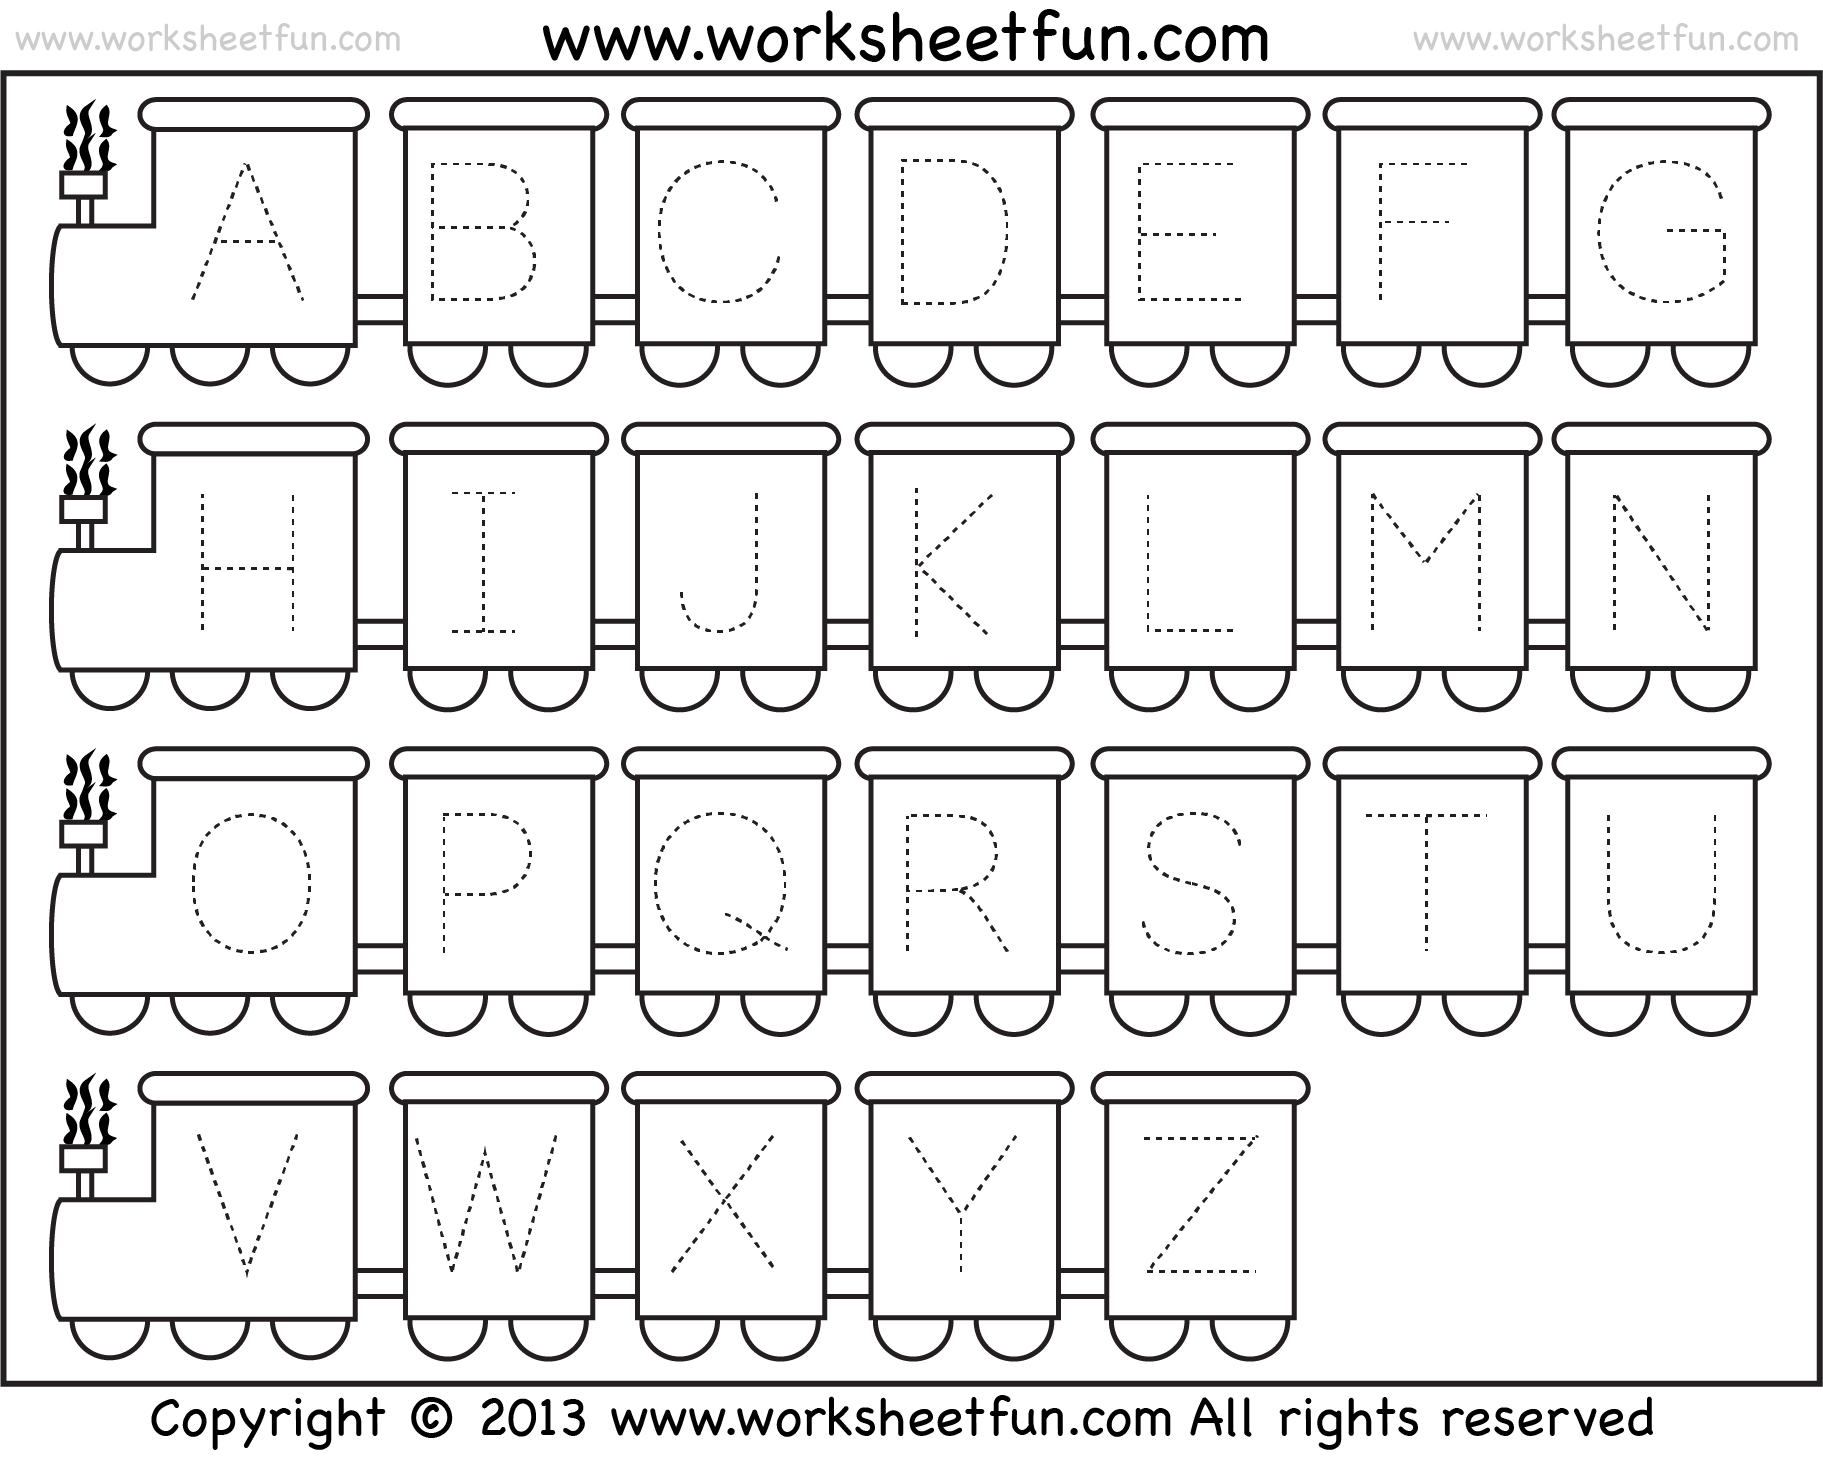 Worksheet Printable Letter Tracing letter tracing worksheet train theme free printable worksheets tracing